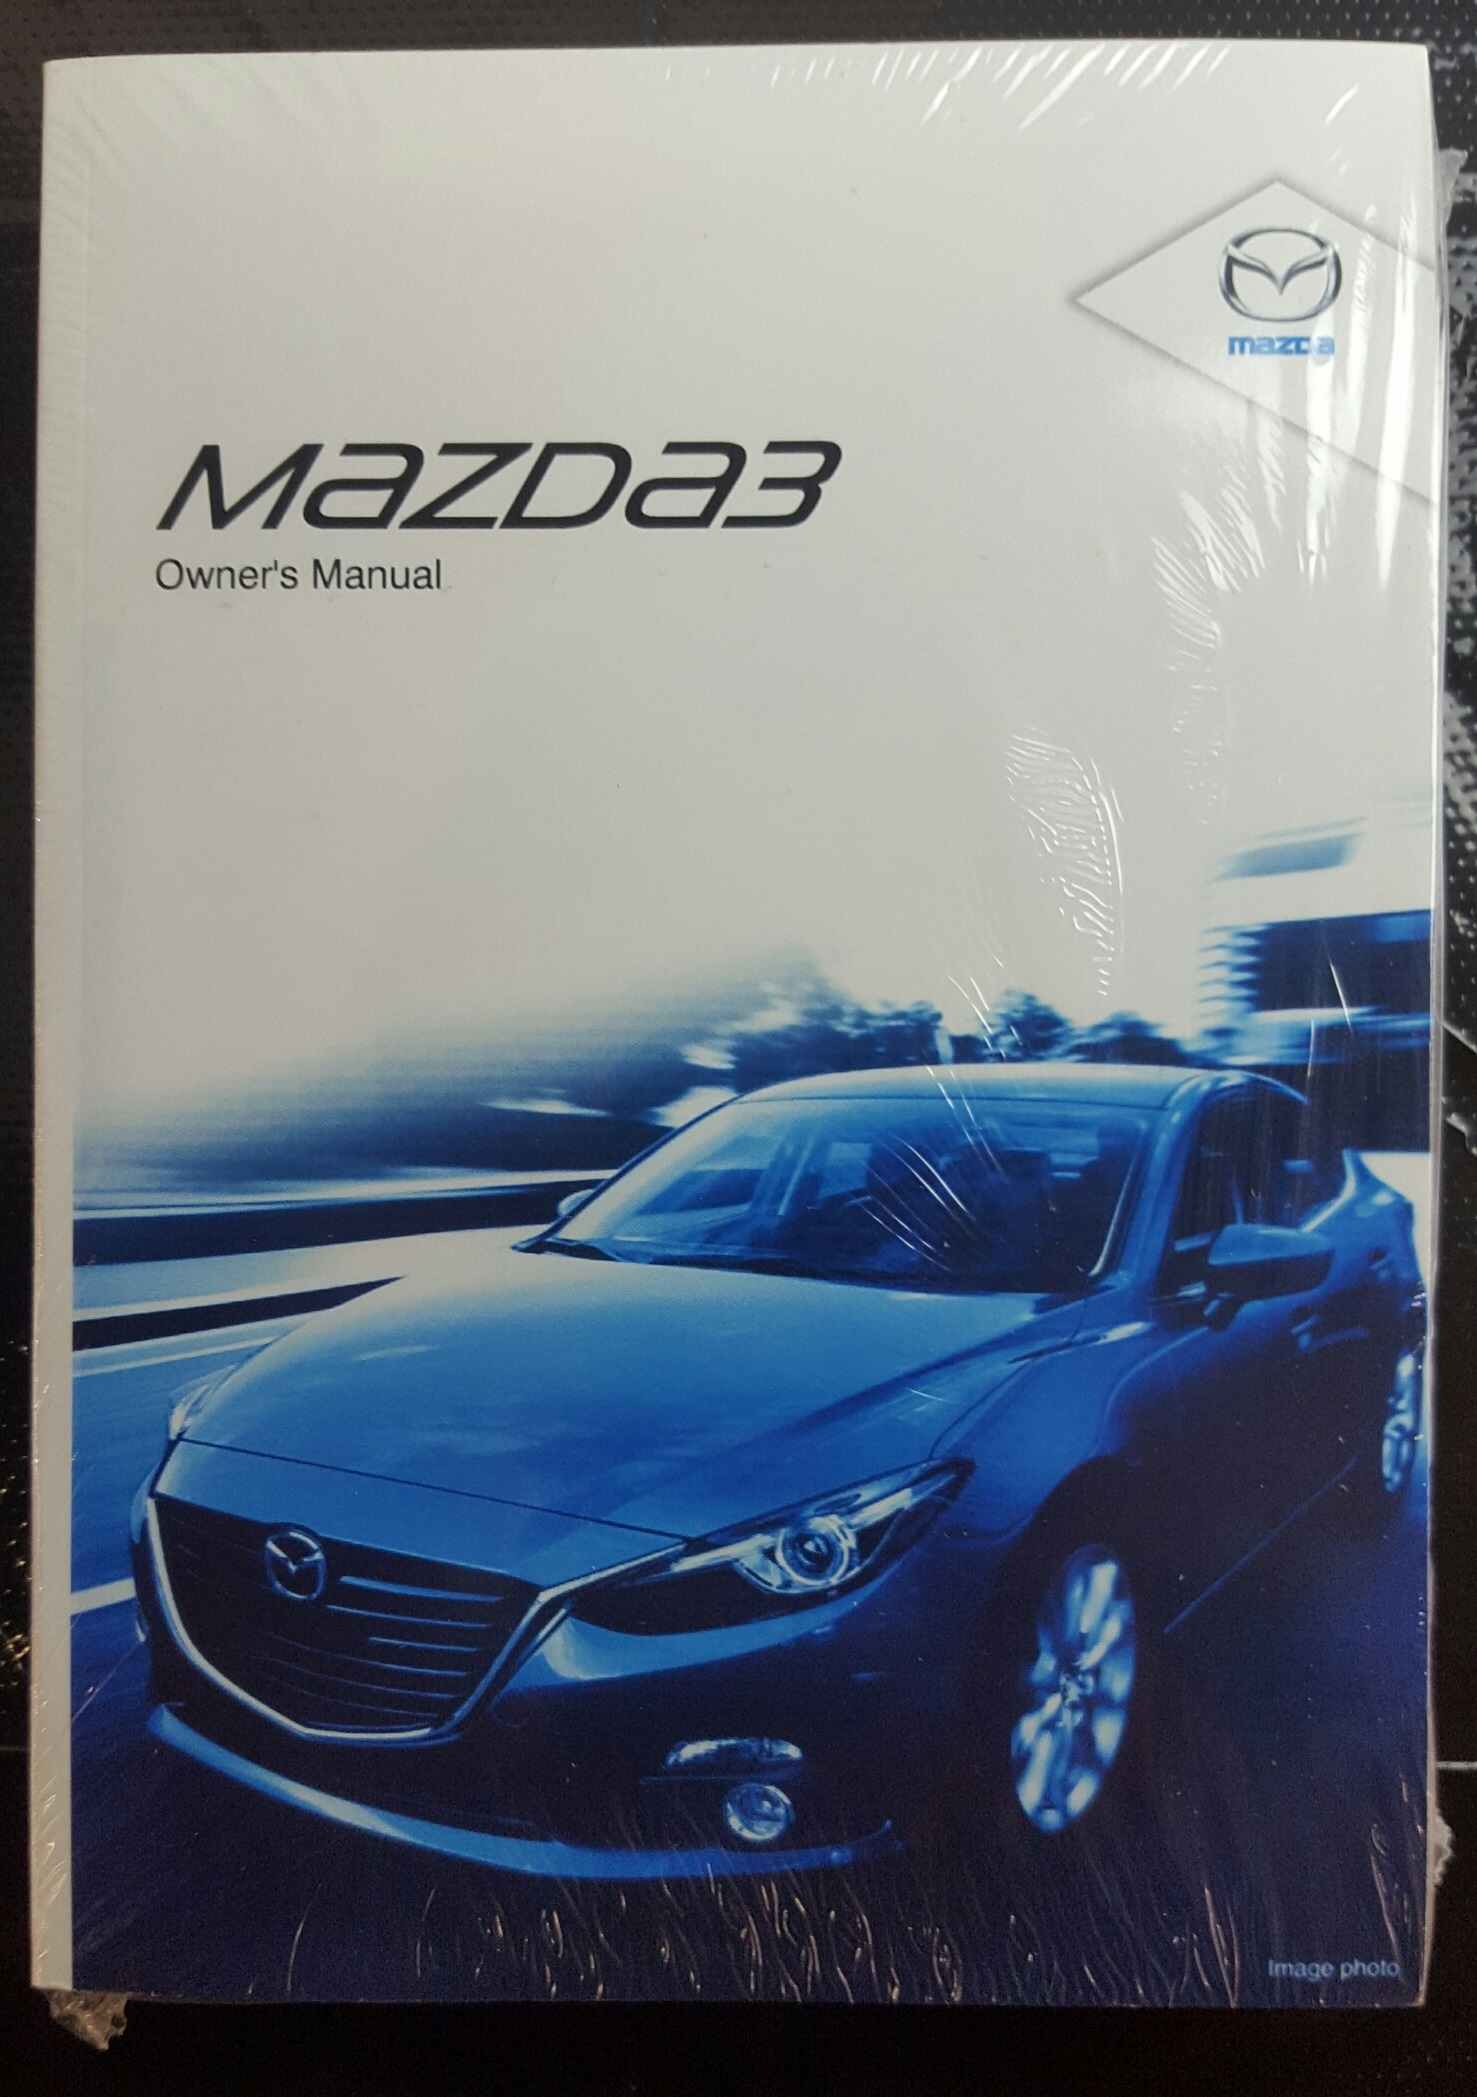 new genuine mazda 3 bm owners manual mazda3 2013 2016 8dz4 eo 14g rh ebay com au mazda 3 owners manual 2017 mazda 3 owners manual 2009